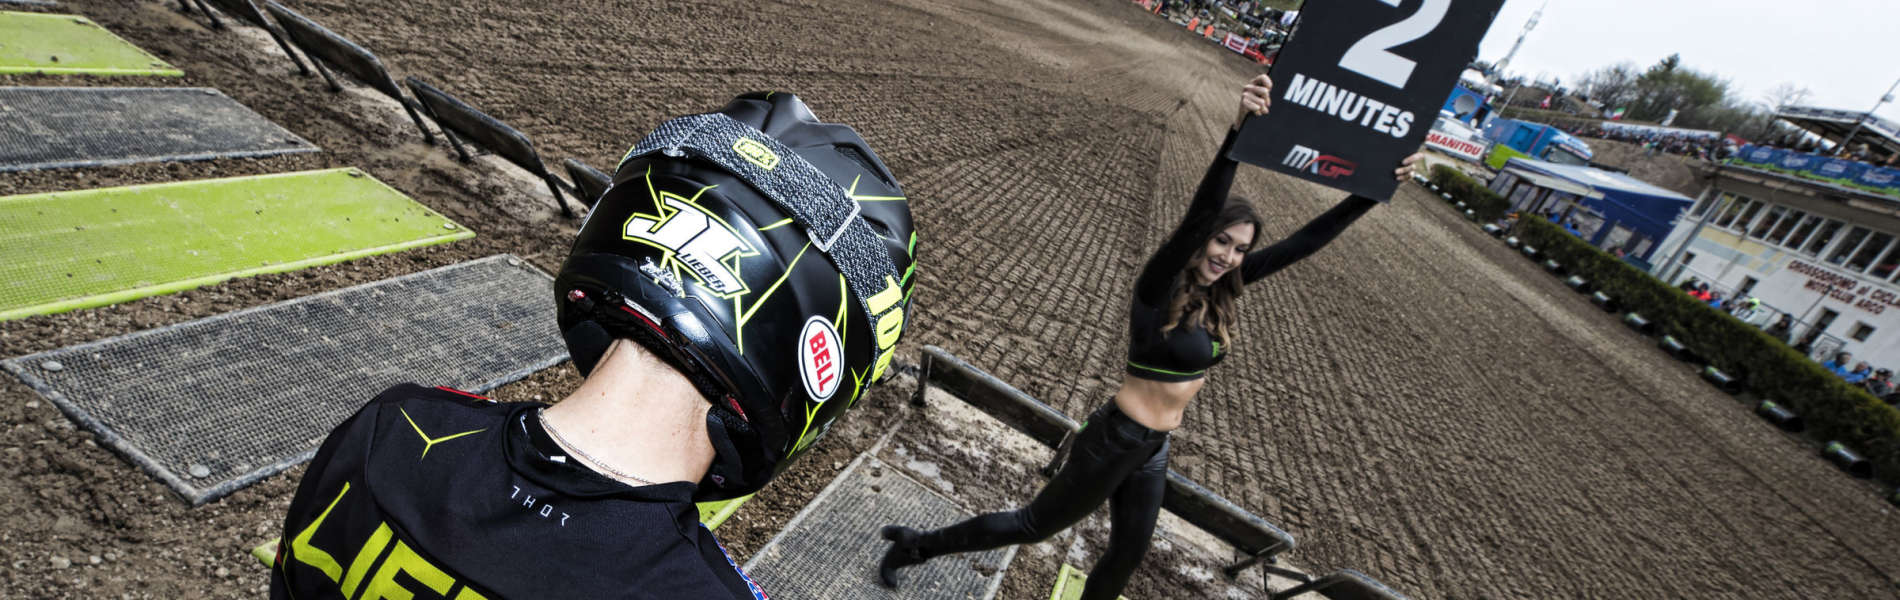 julien lieber in action at MXGP Trentino 2019